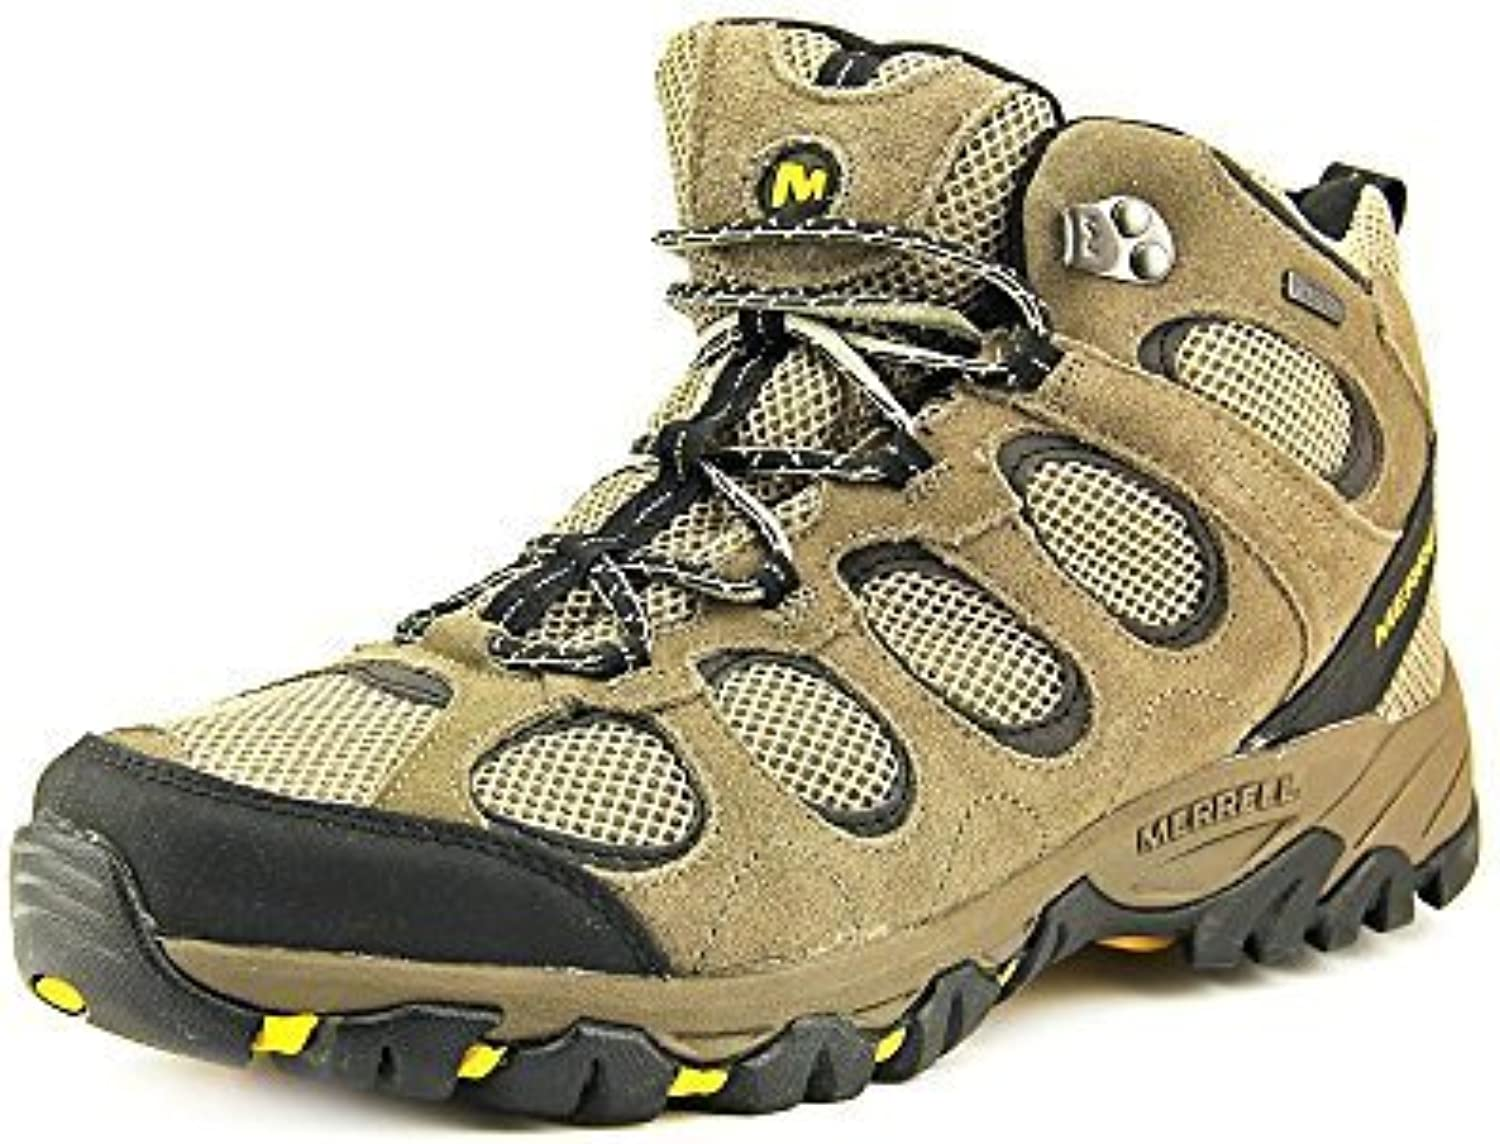 Merrell Men's Hilltop Vent Mid Waterproof Hiking shoes (8.5 D(M) US Brindle)